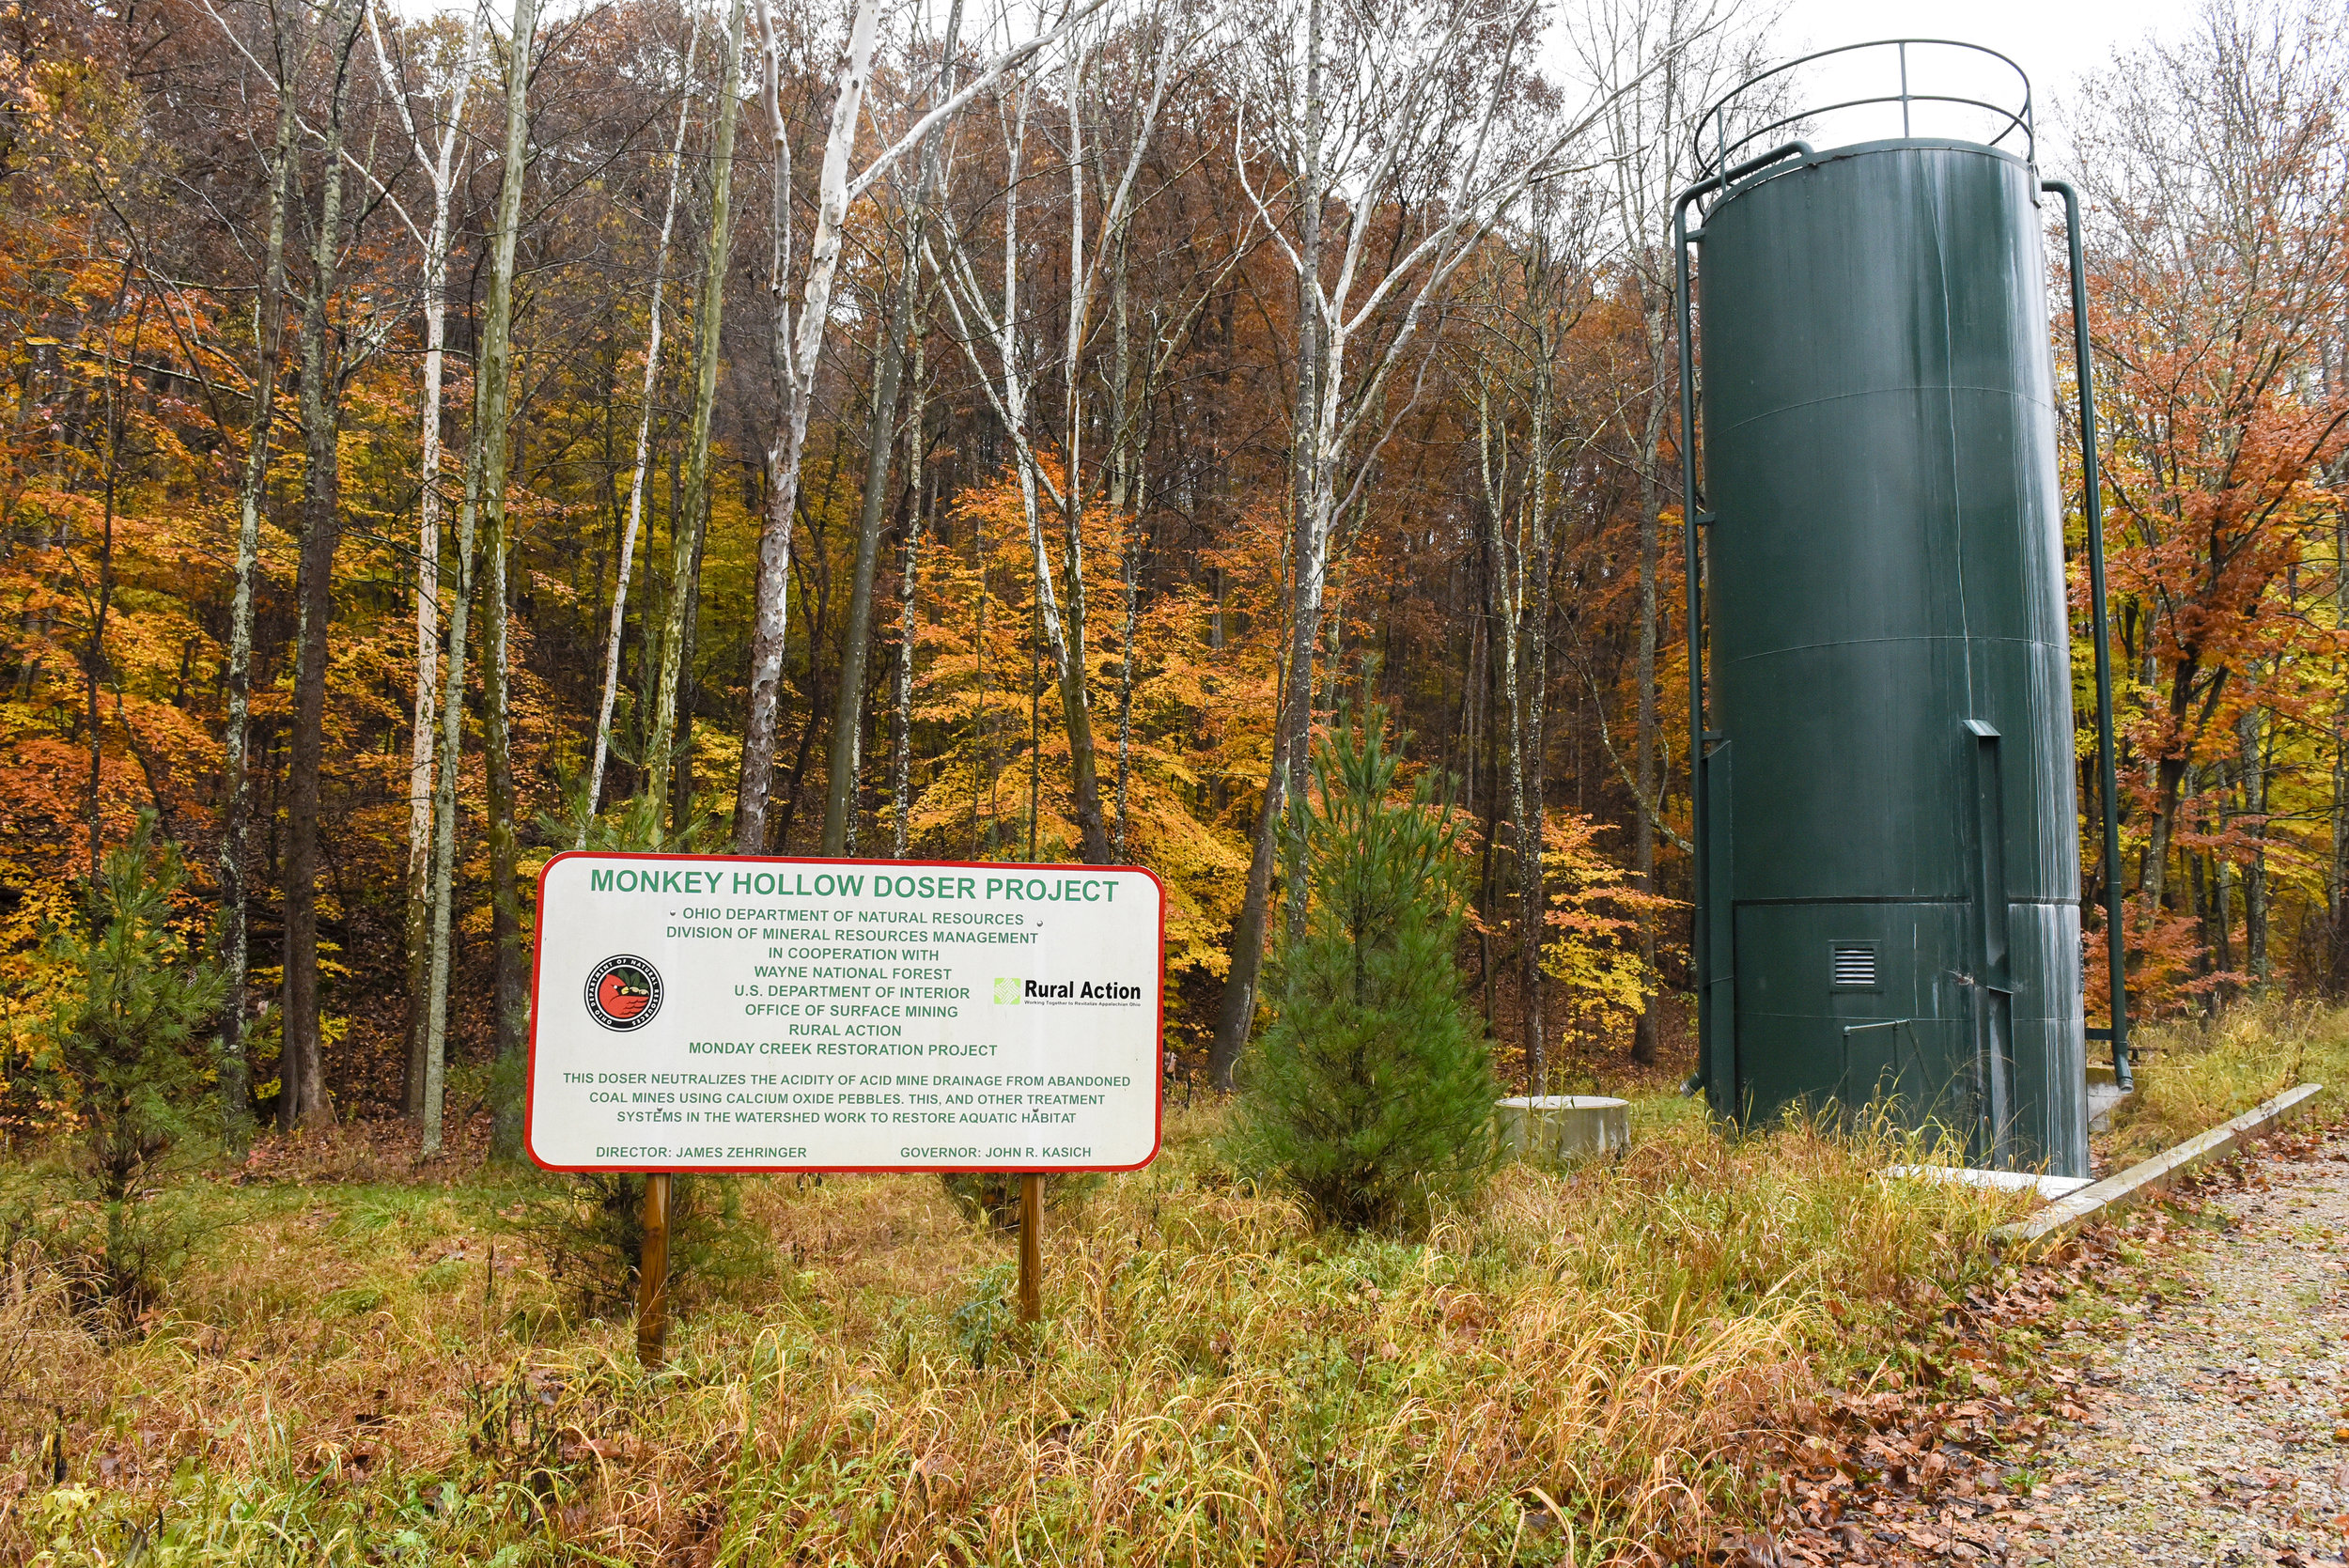 The Monkey Hollow Doser Project, located in Carbon Hill (a census-designated place in central Ward Township, Hocking County) was built in 2014 after the initial doser site was moved here.